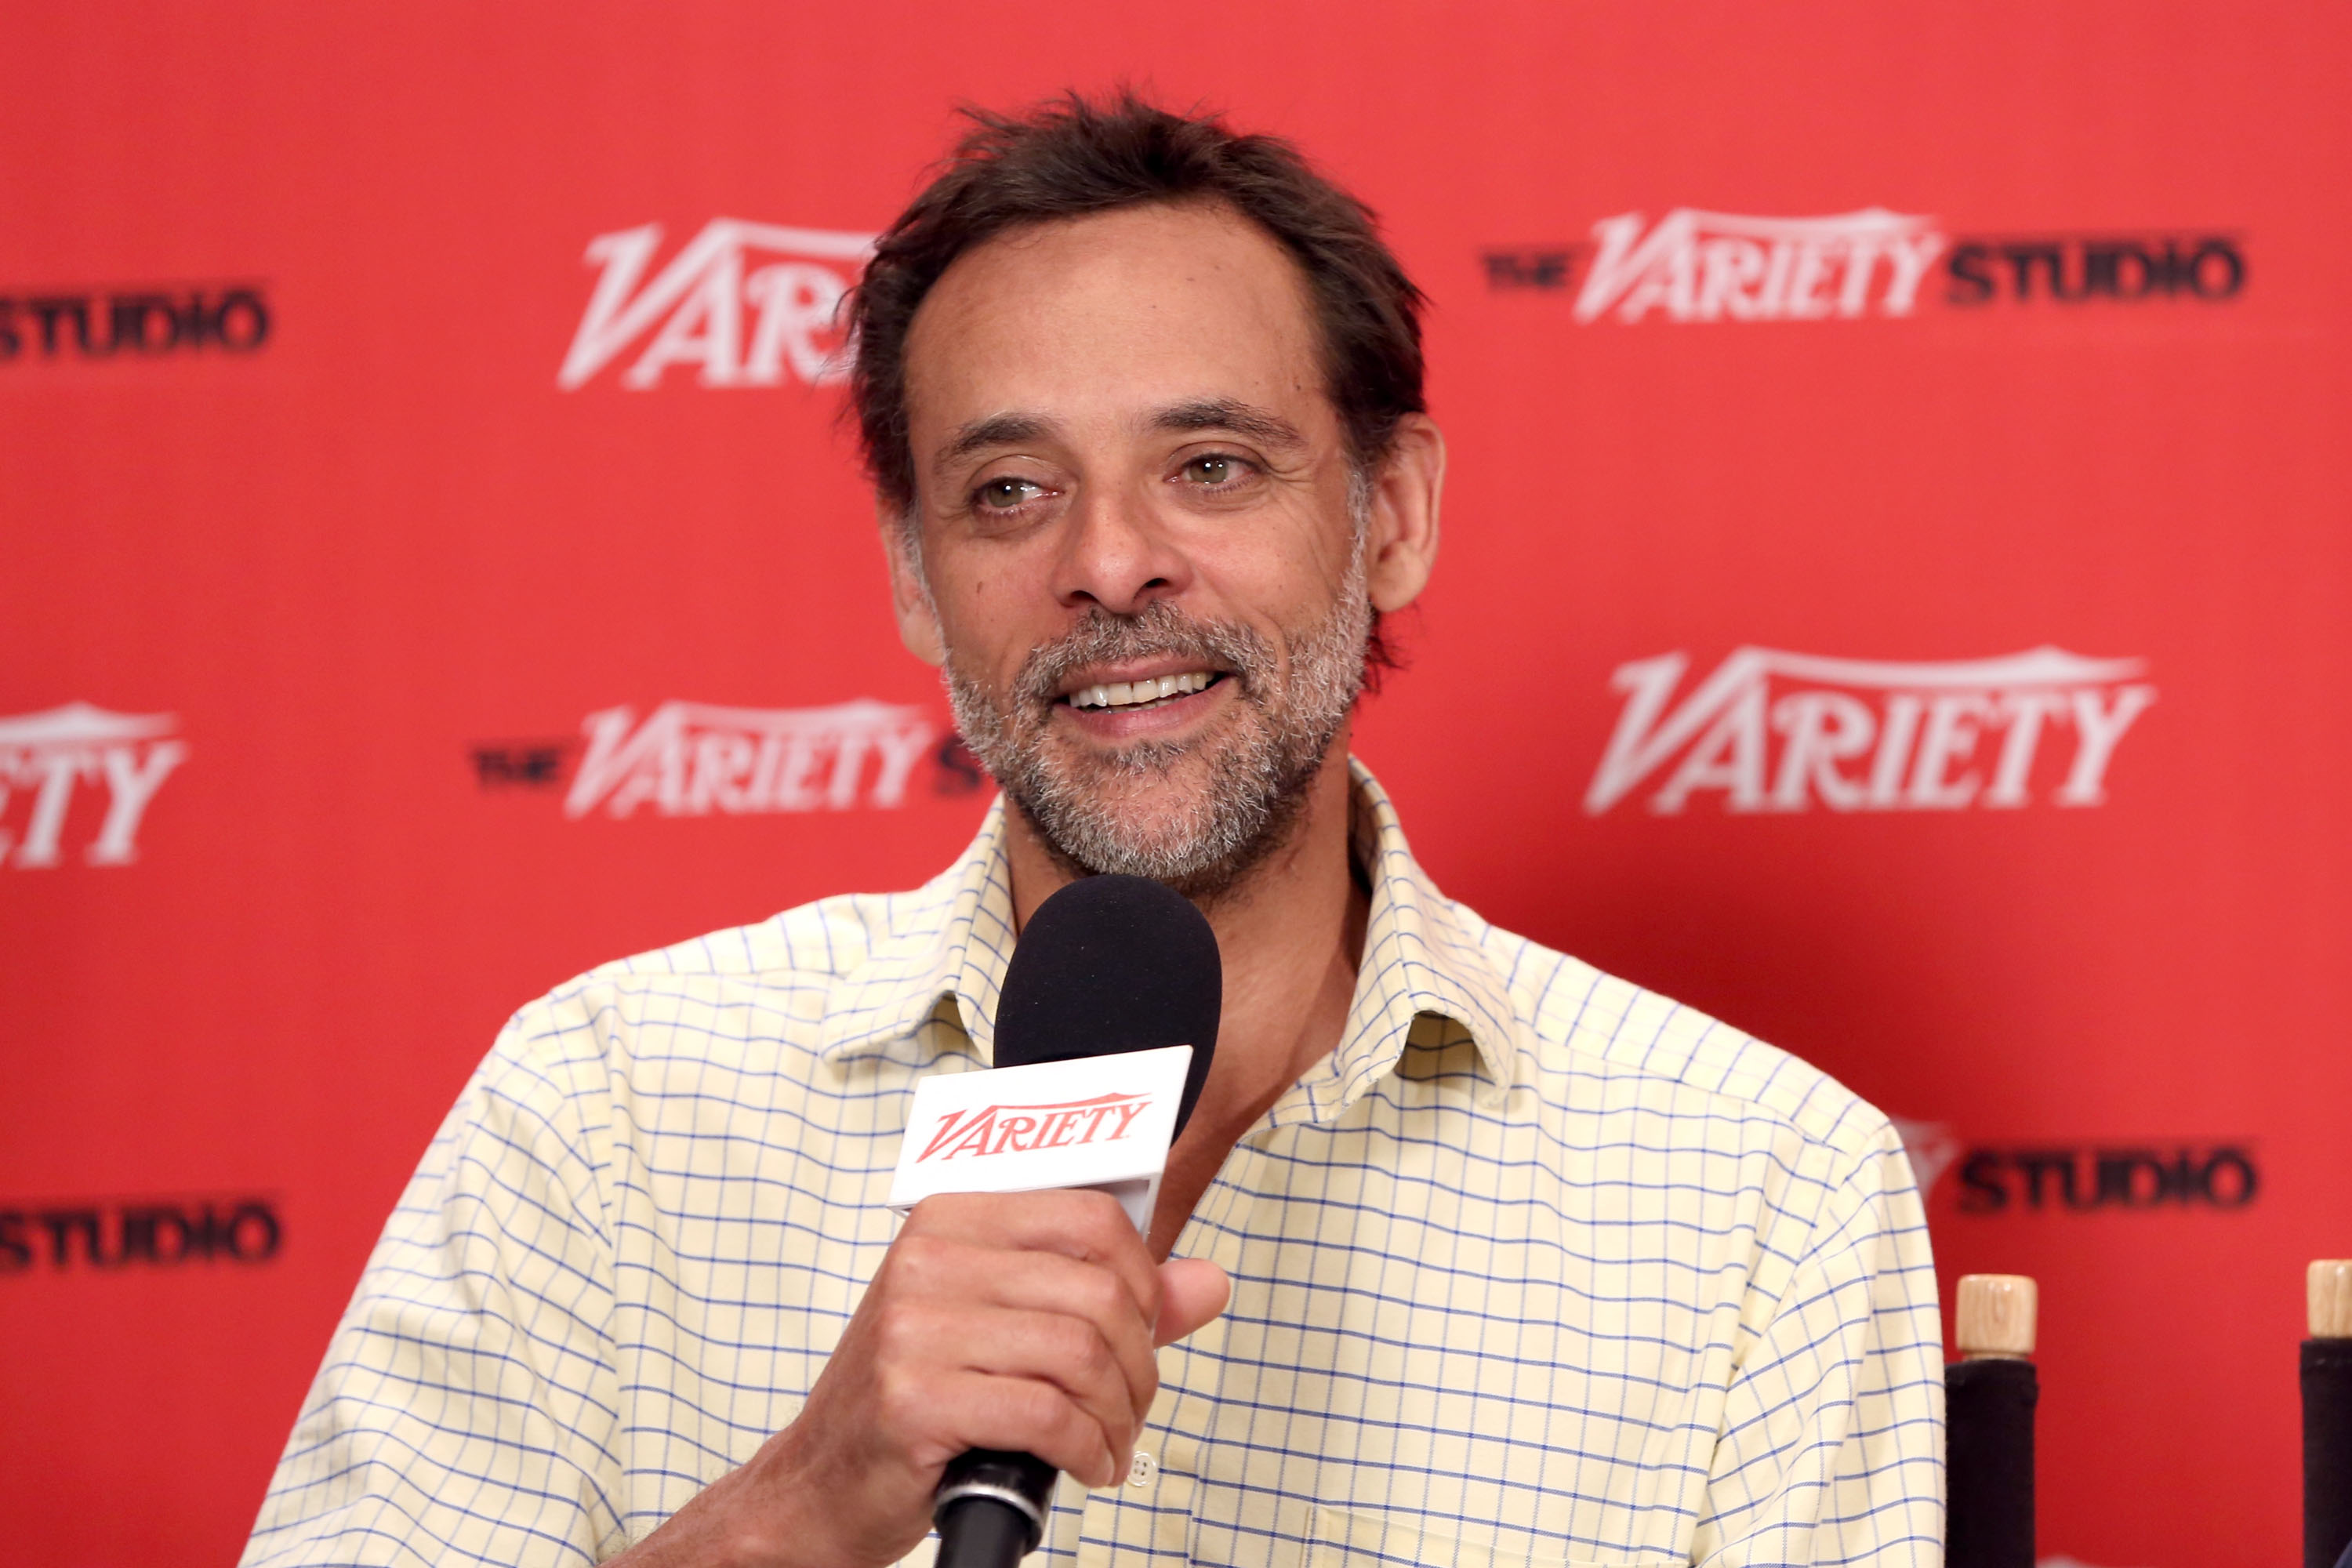 Actor Alexander Siddig would love to star in Doctor Who but says BBC bosses should cast a female lead (Picture: WireImage)